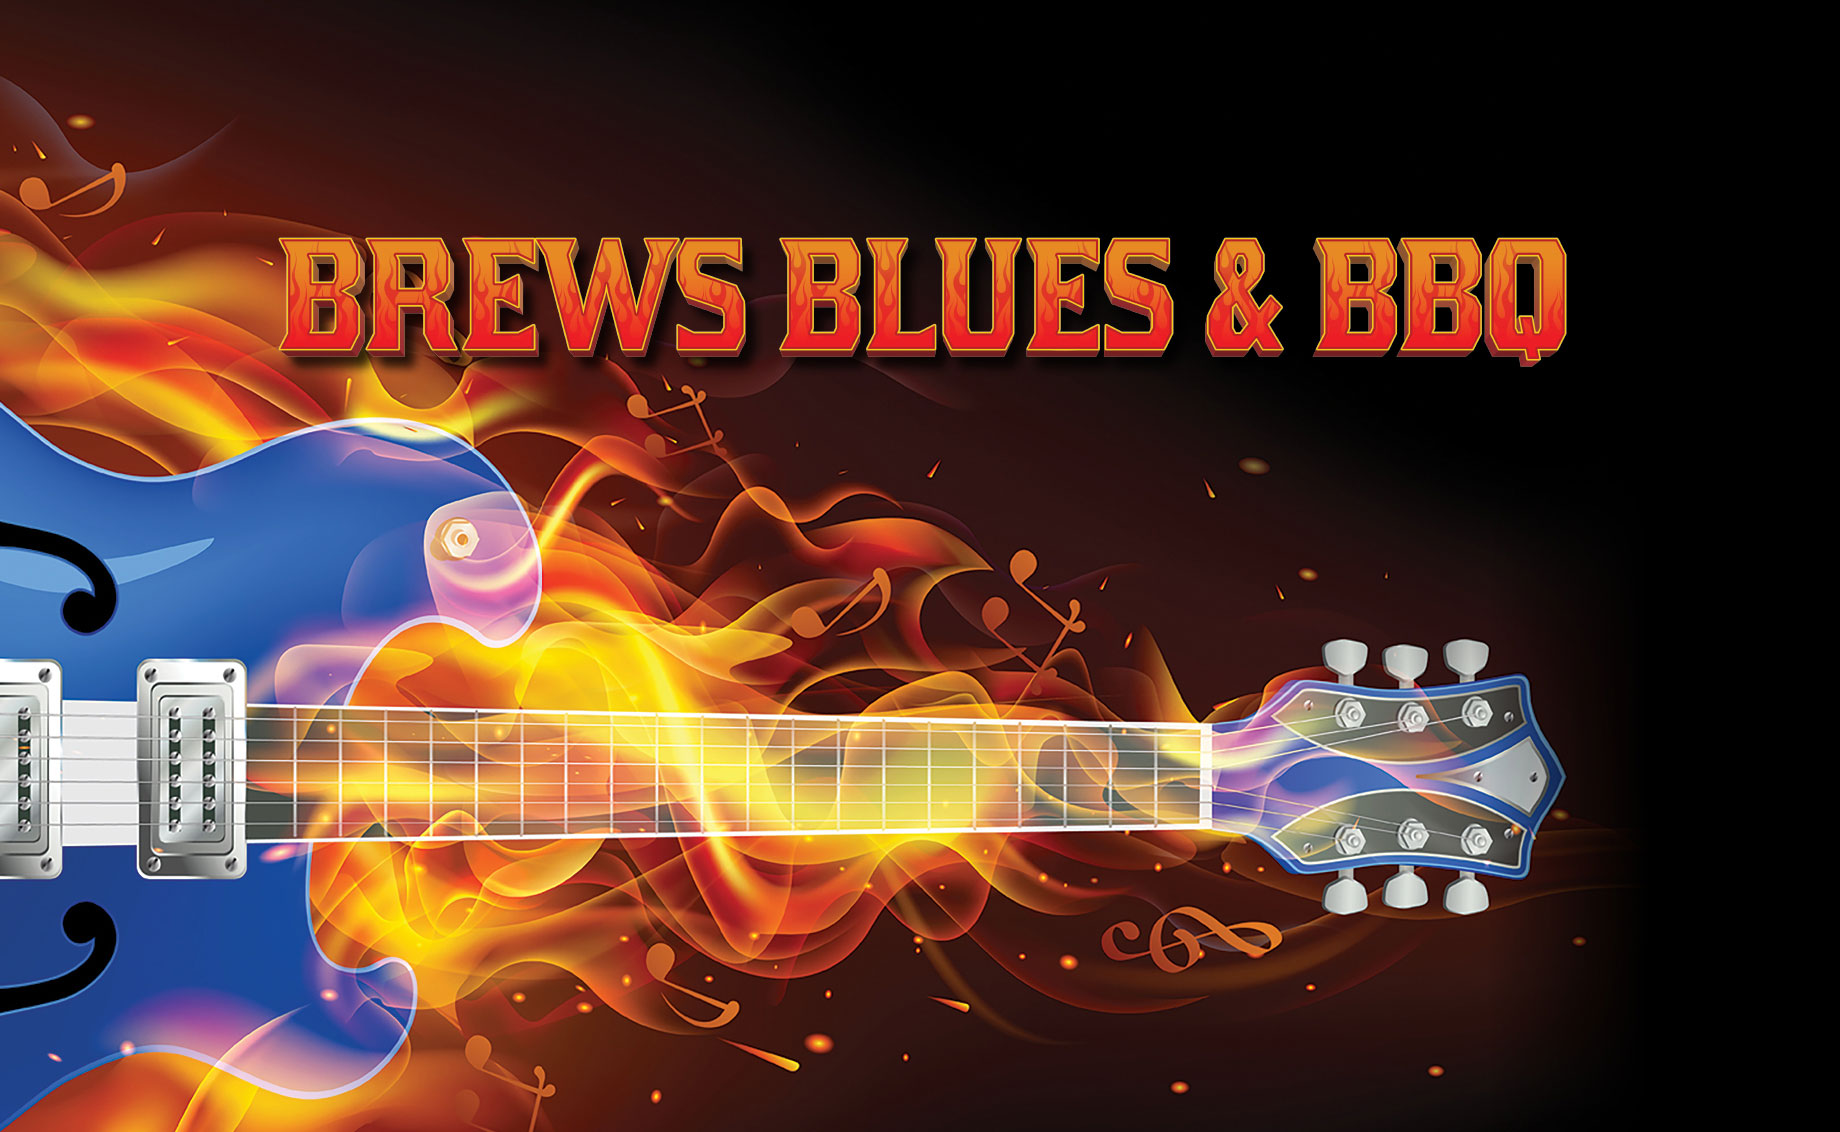 Brews, Blues and BBQ